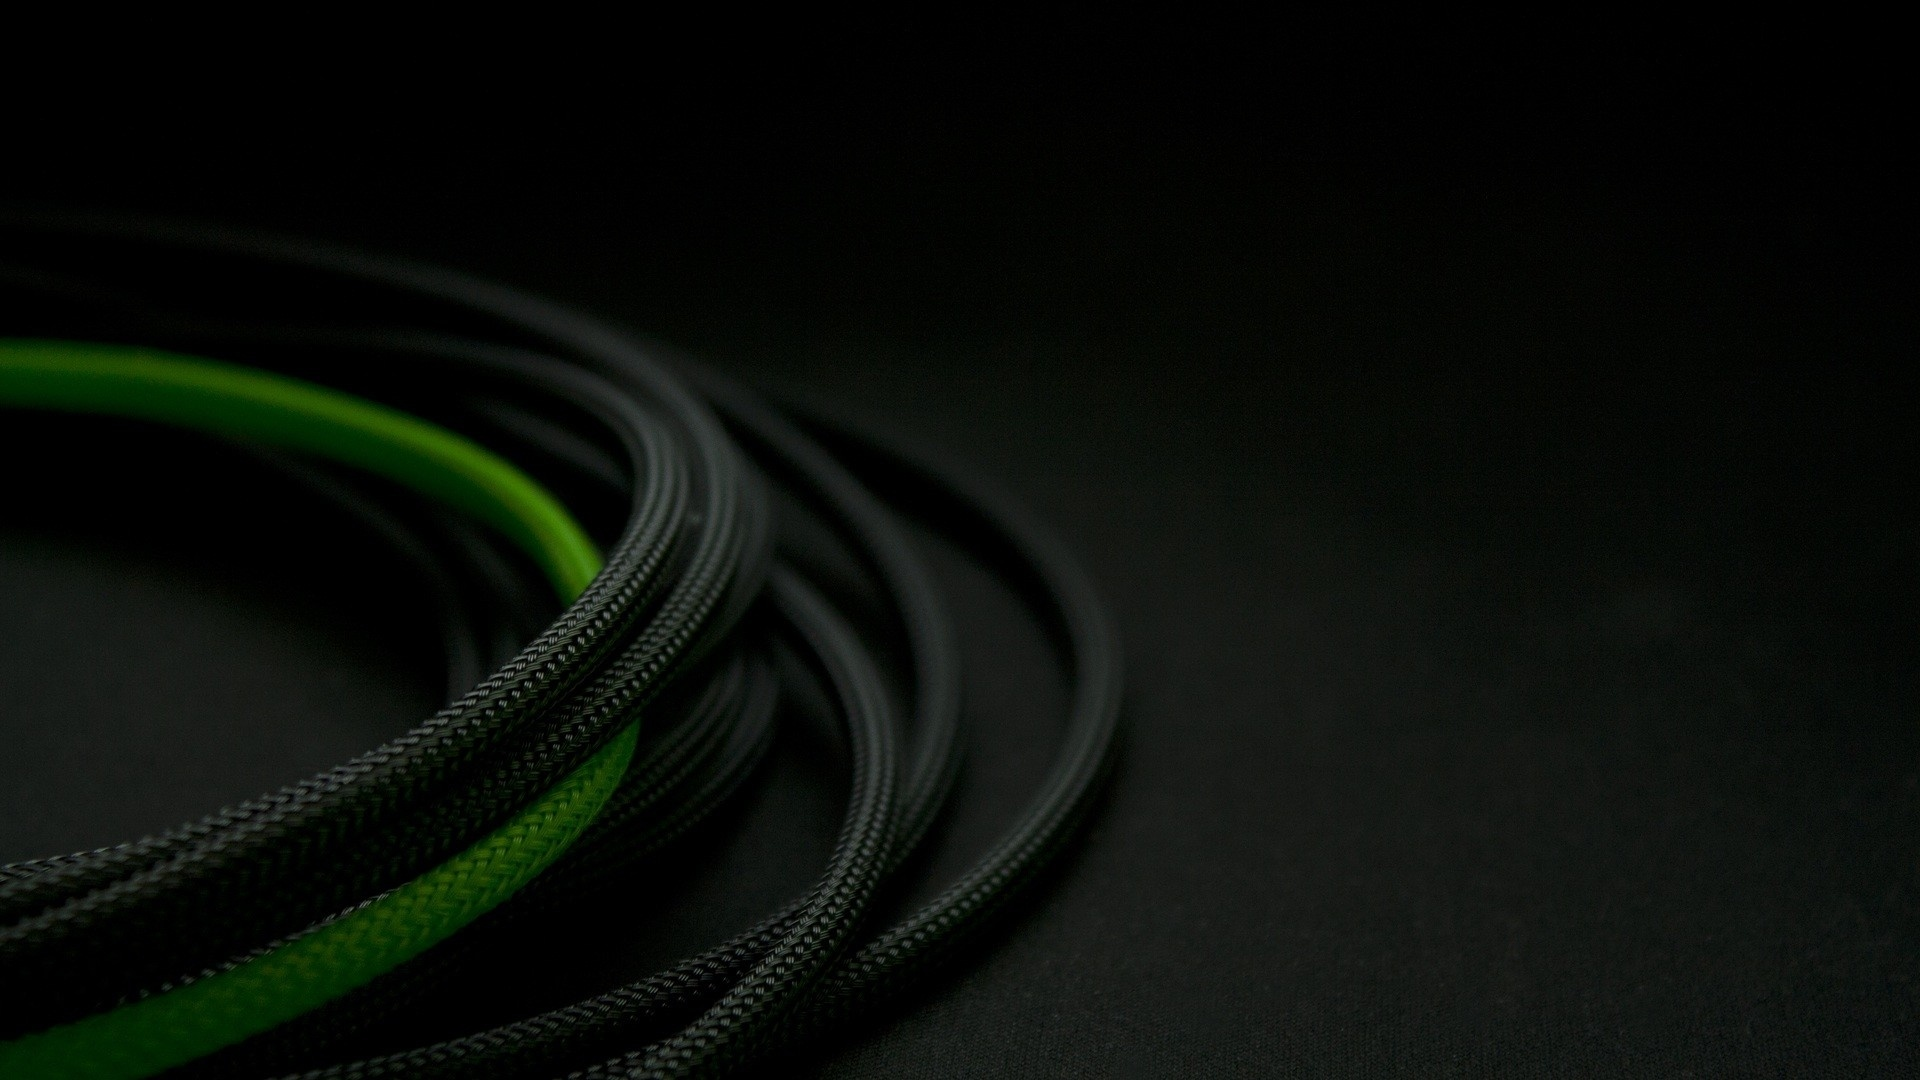 Black And Green Wallpaper and Background